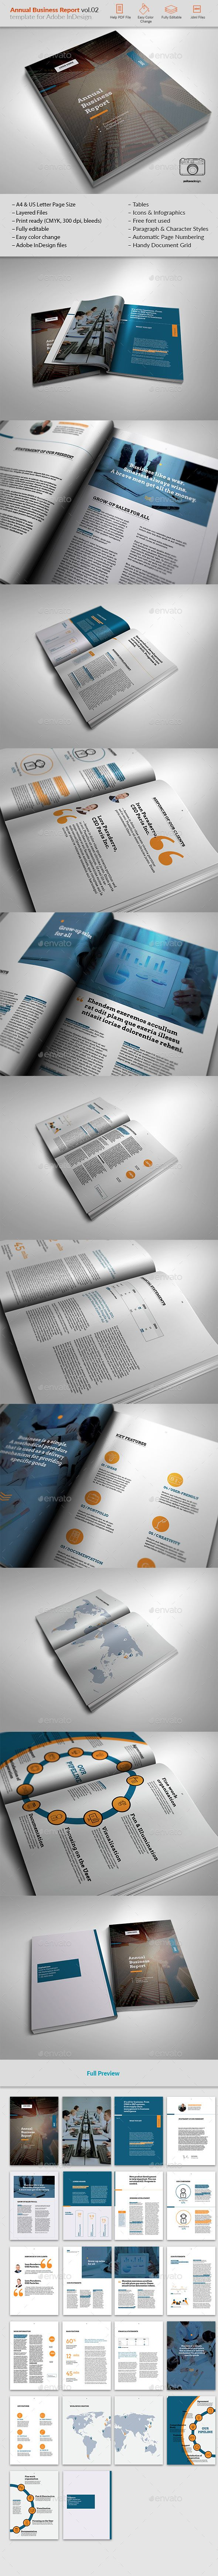 top 25 ideas about annual report template design buy annual report template by infoptava on graphicriver 22 page indesign annual report clean professional modern template design